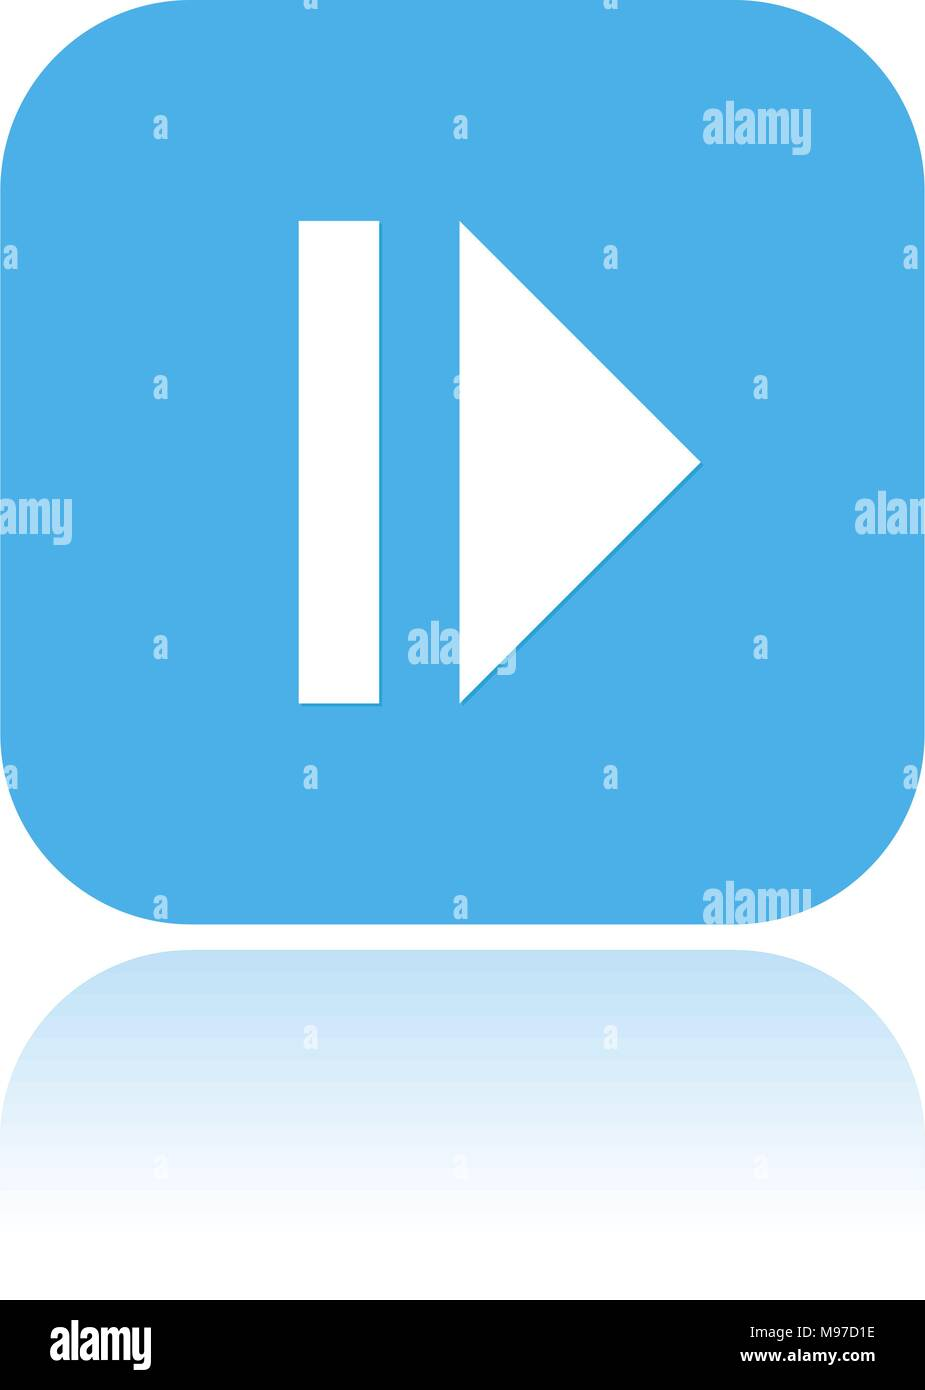 PAUSE icon. Blue square icon with reflection - Stock Image